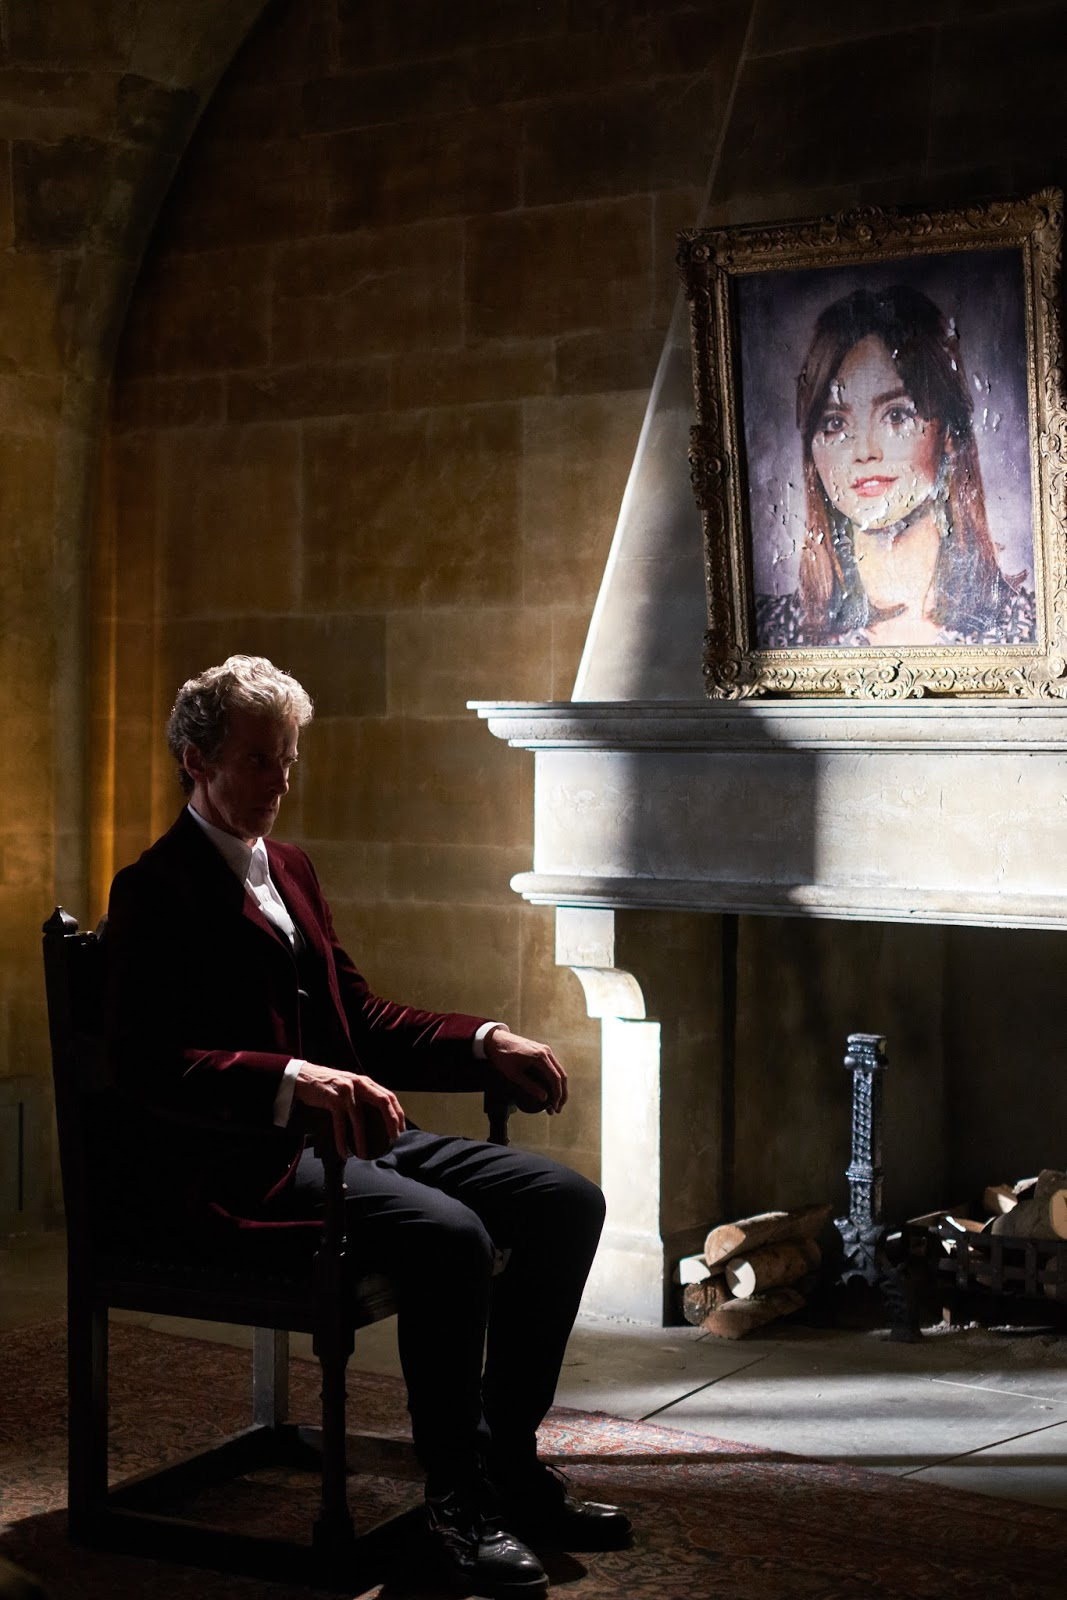 Doctor Who Series 9: Heaven Sent image gallery - Blogtor Who